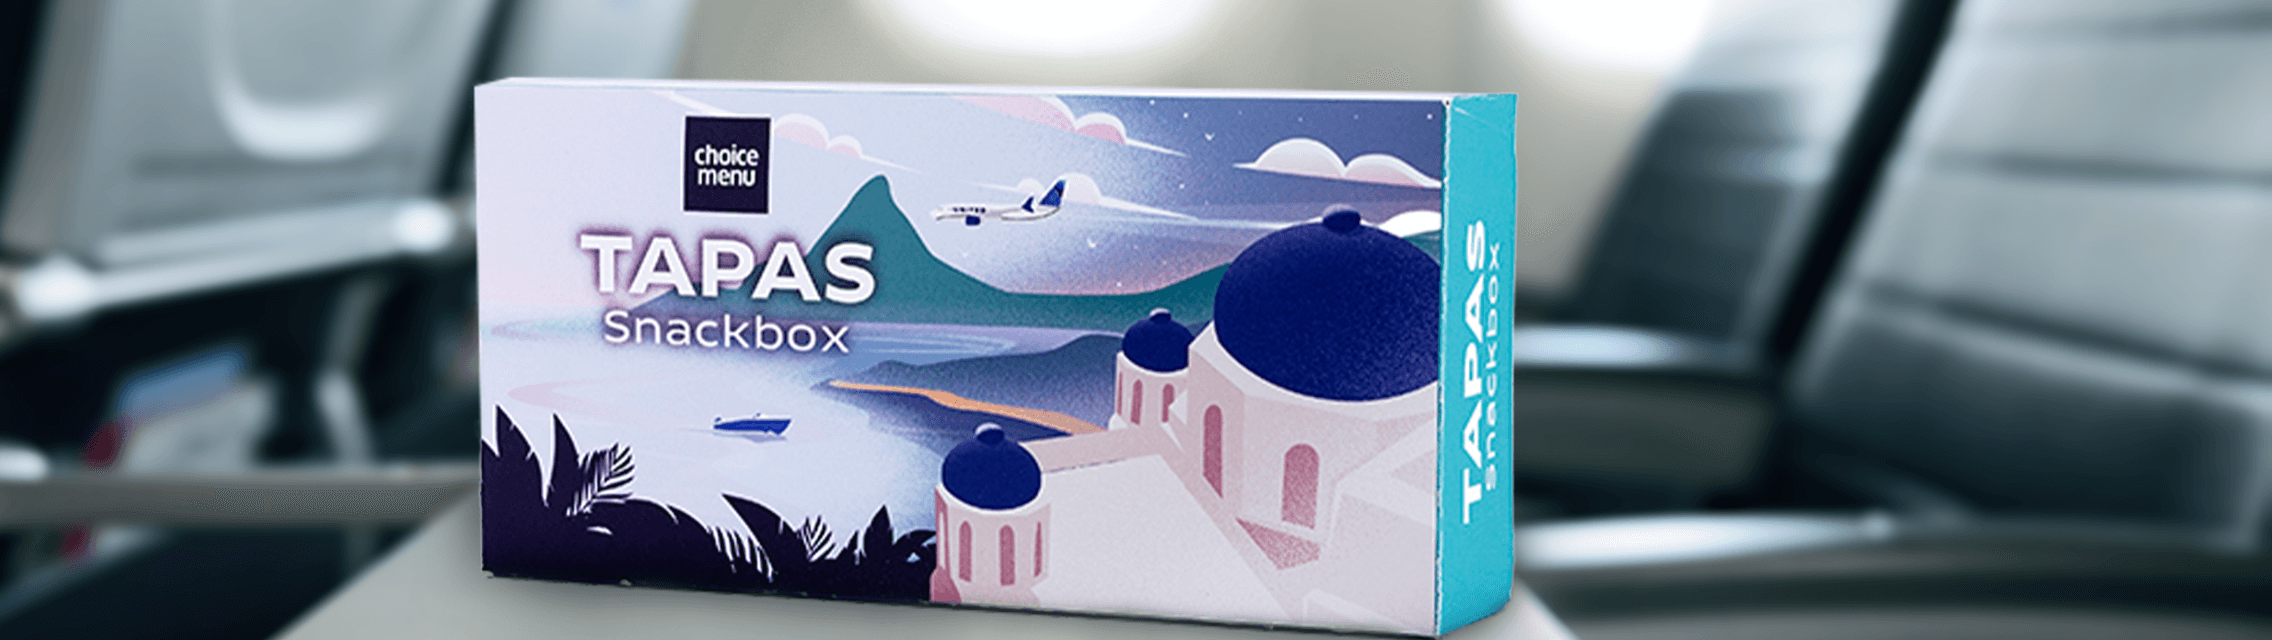 a representation of a Tapas Snackbox package sample shown on seat tray in flight.